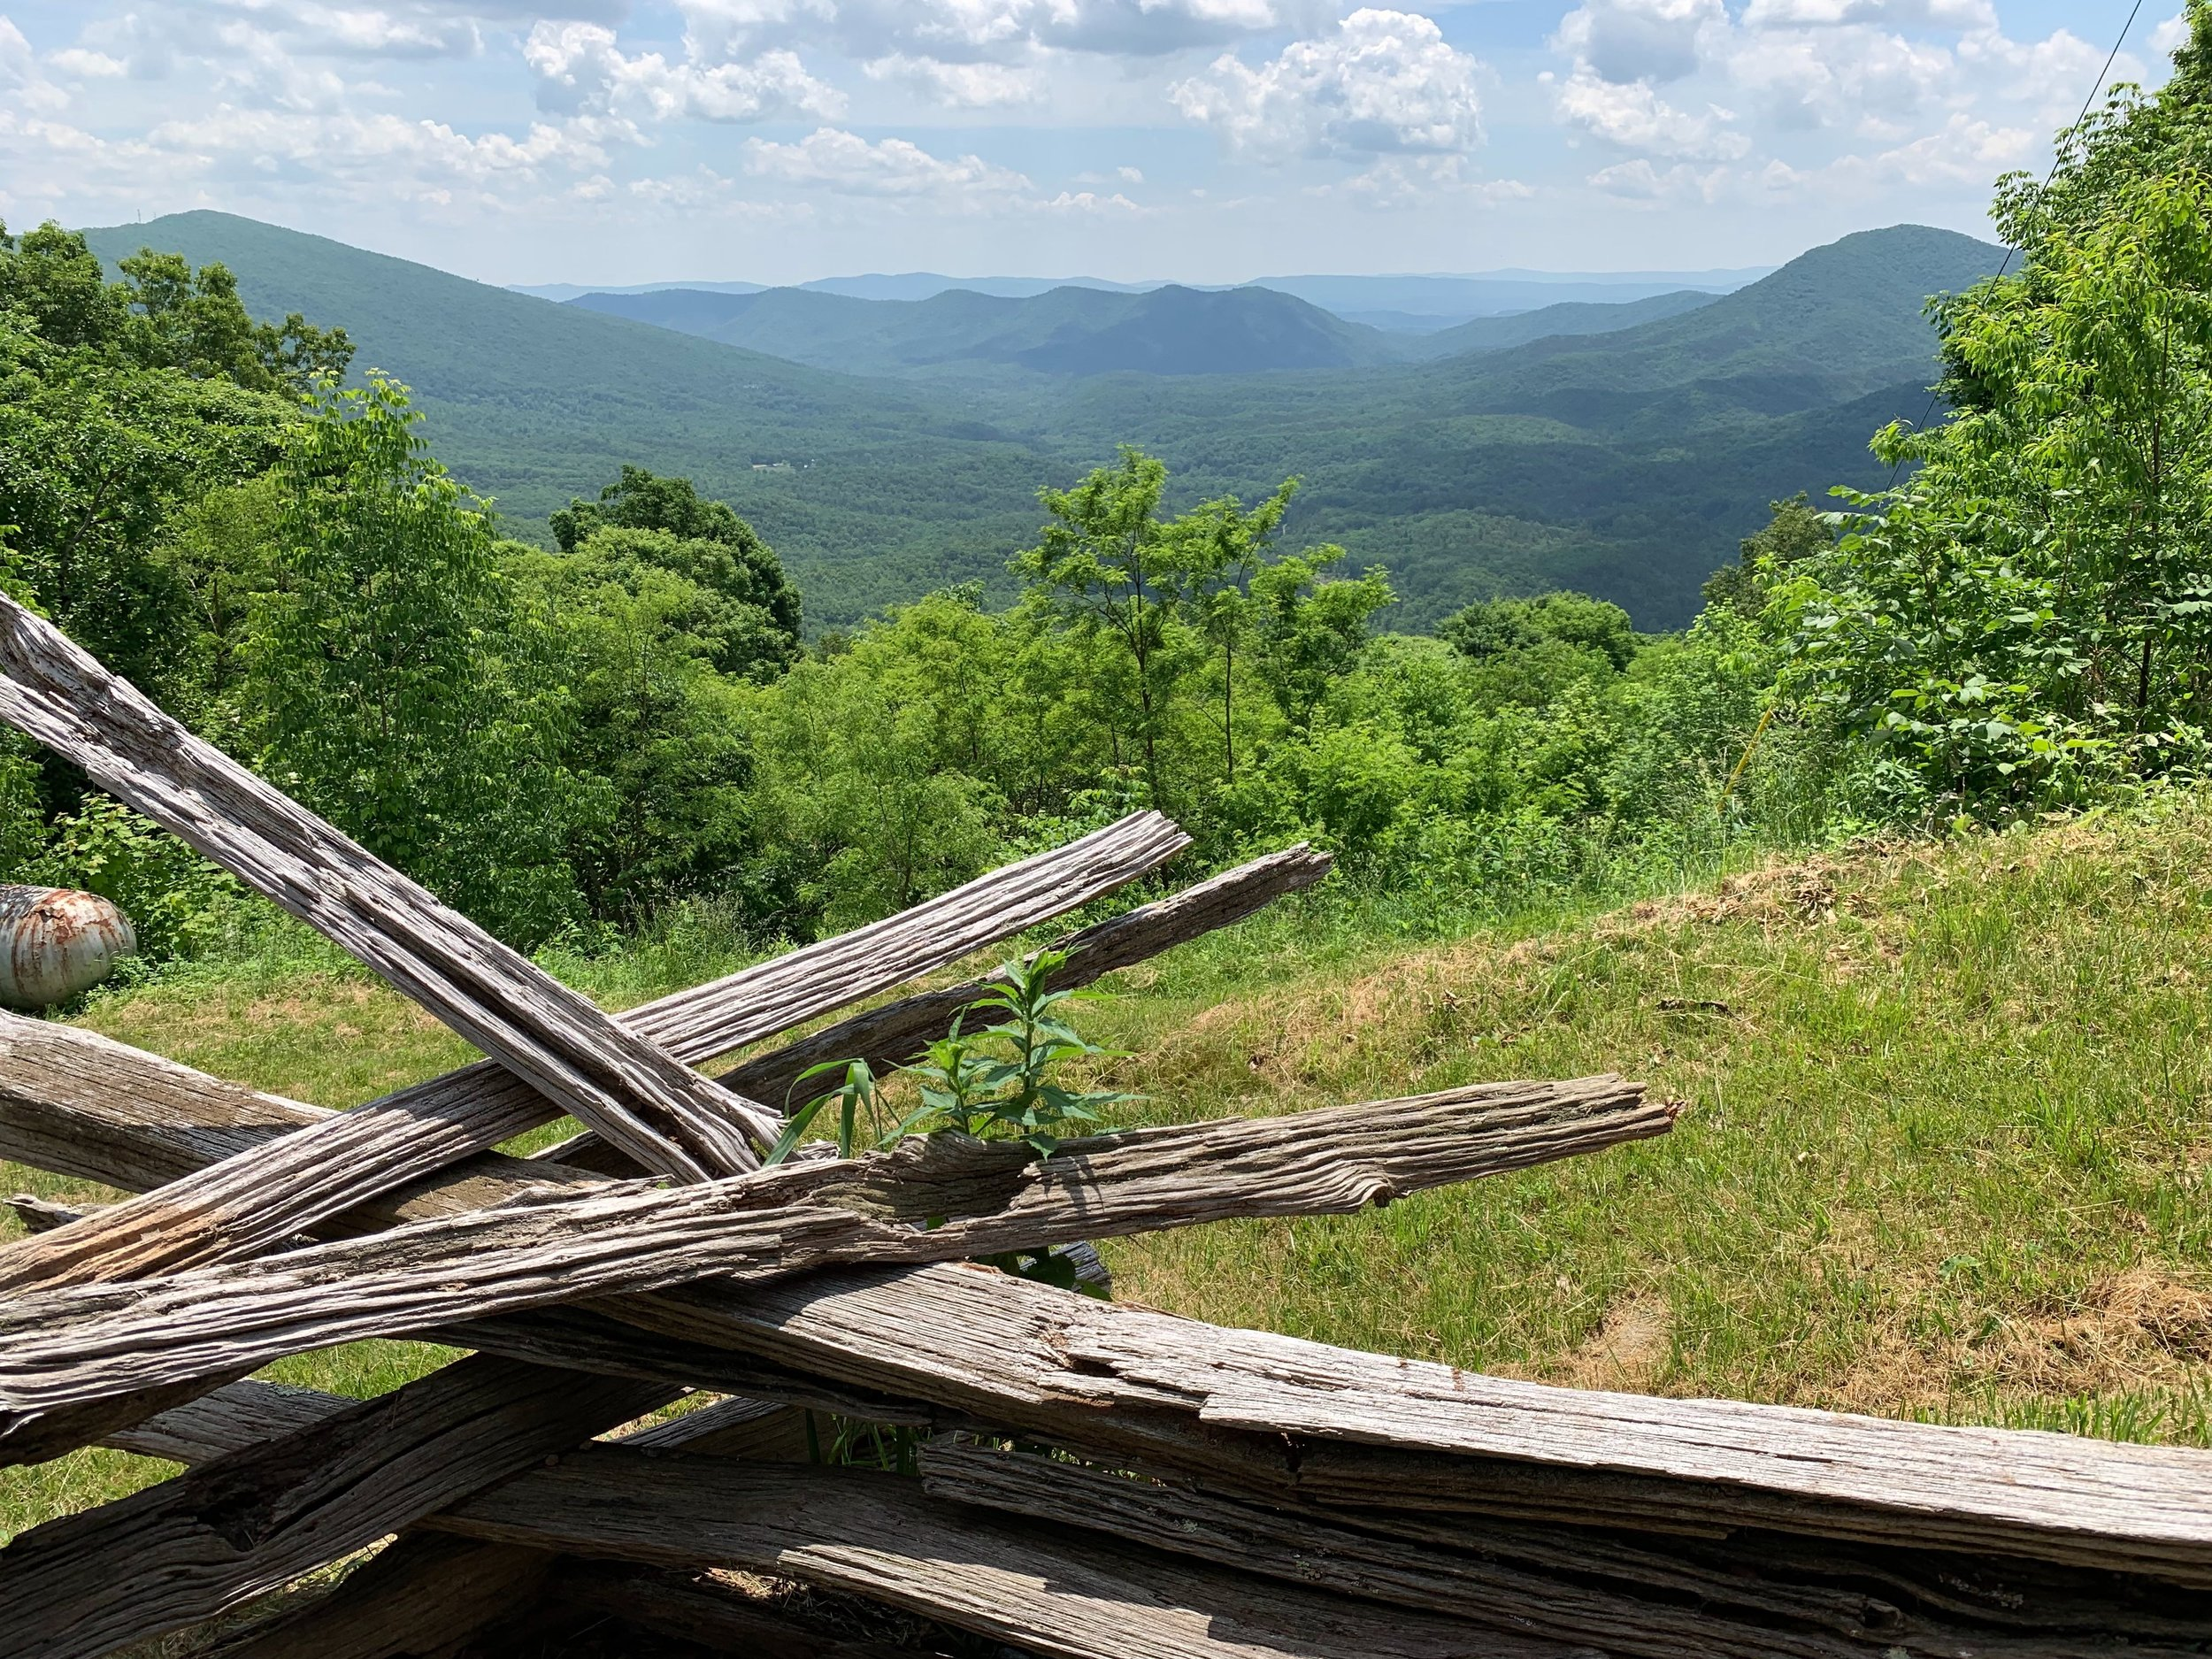 Copy of Wythe Mountains Image from iOS Kristina w fence.jpg